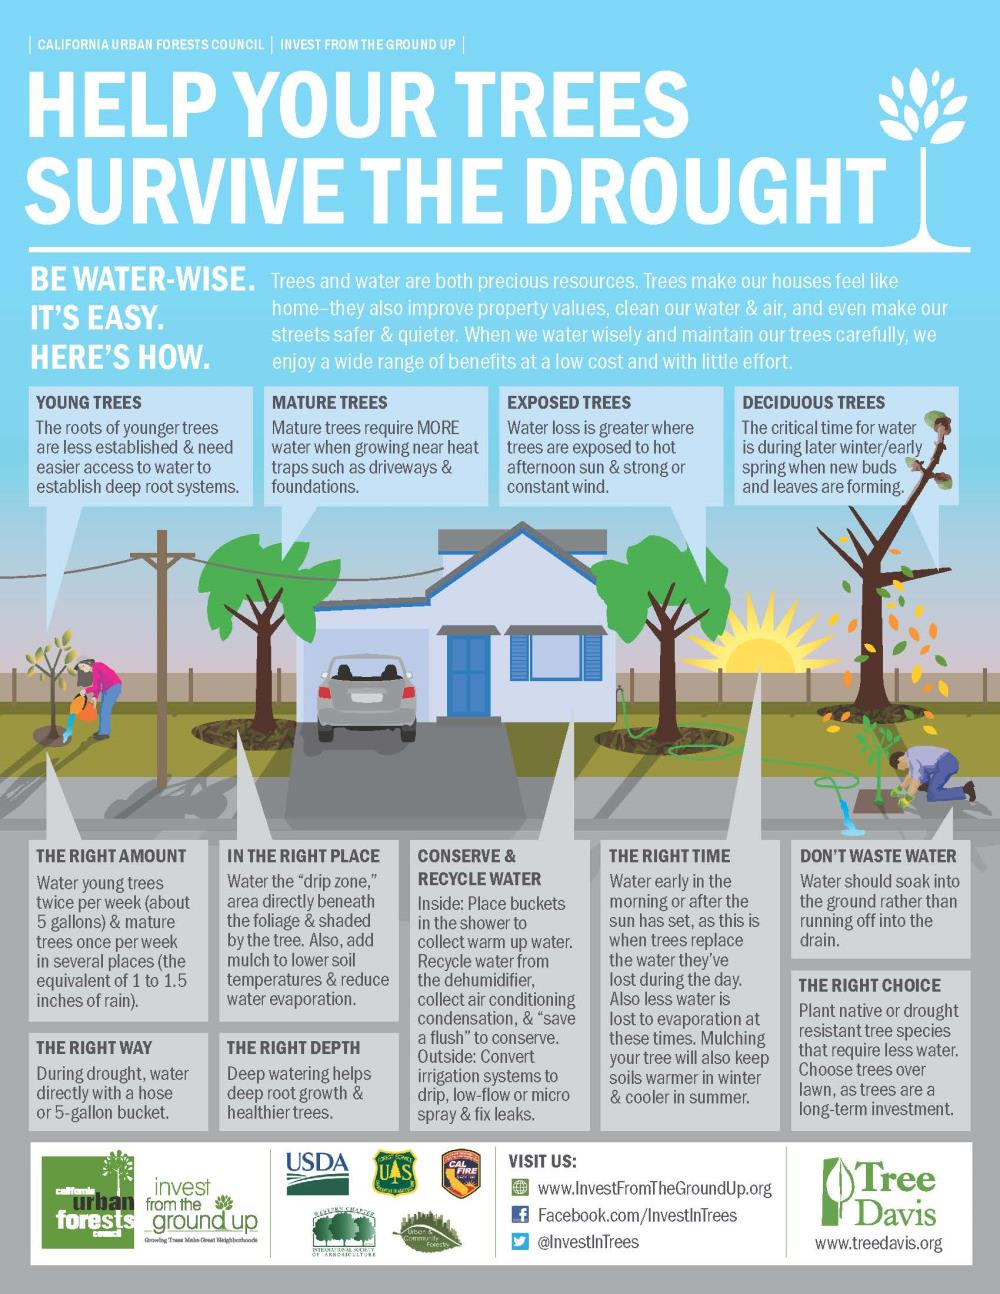 Tree-Davis-Drought-Infographic